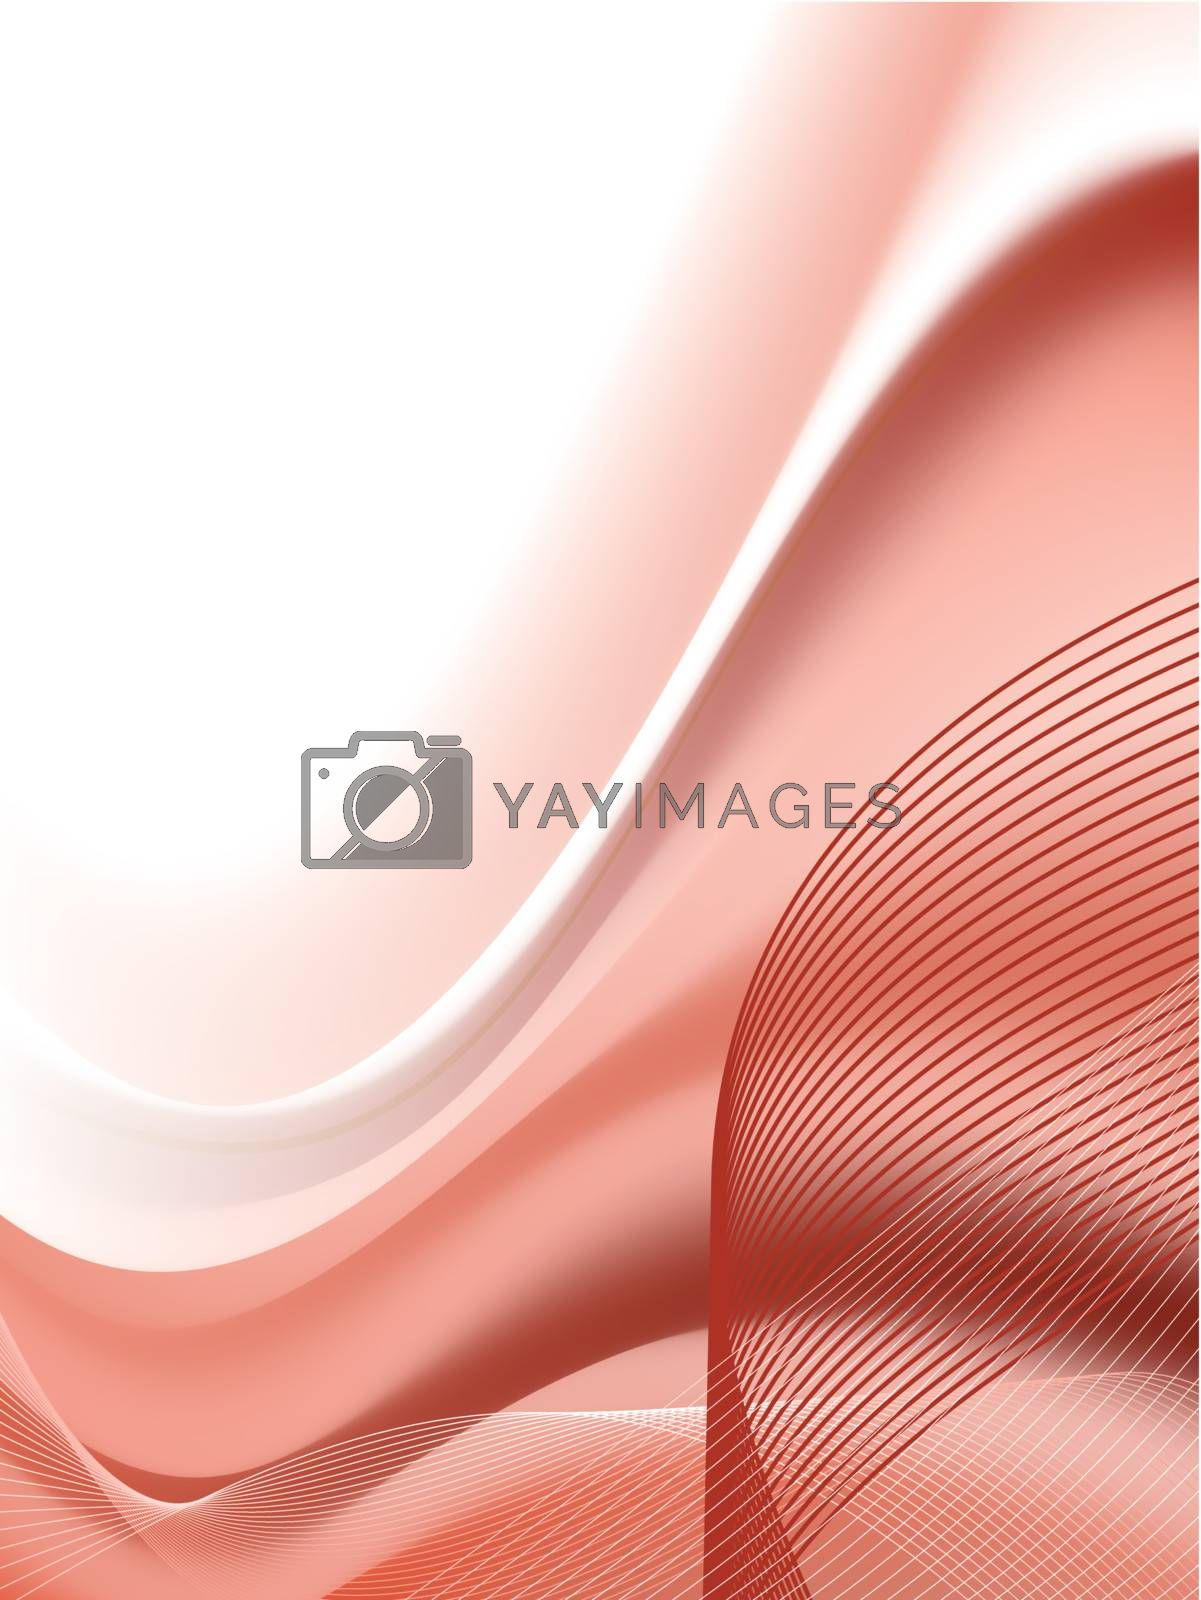 Modern Abstract Background  EPS 10 vector file included